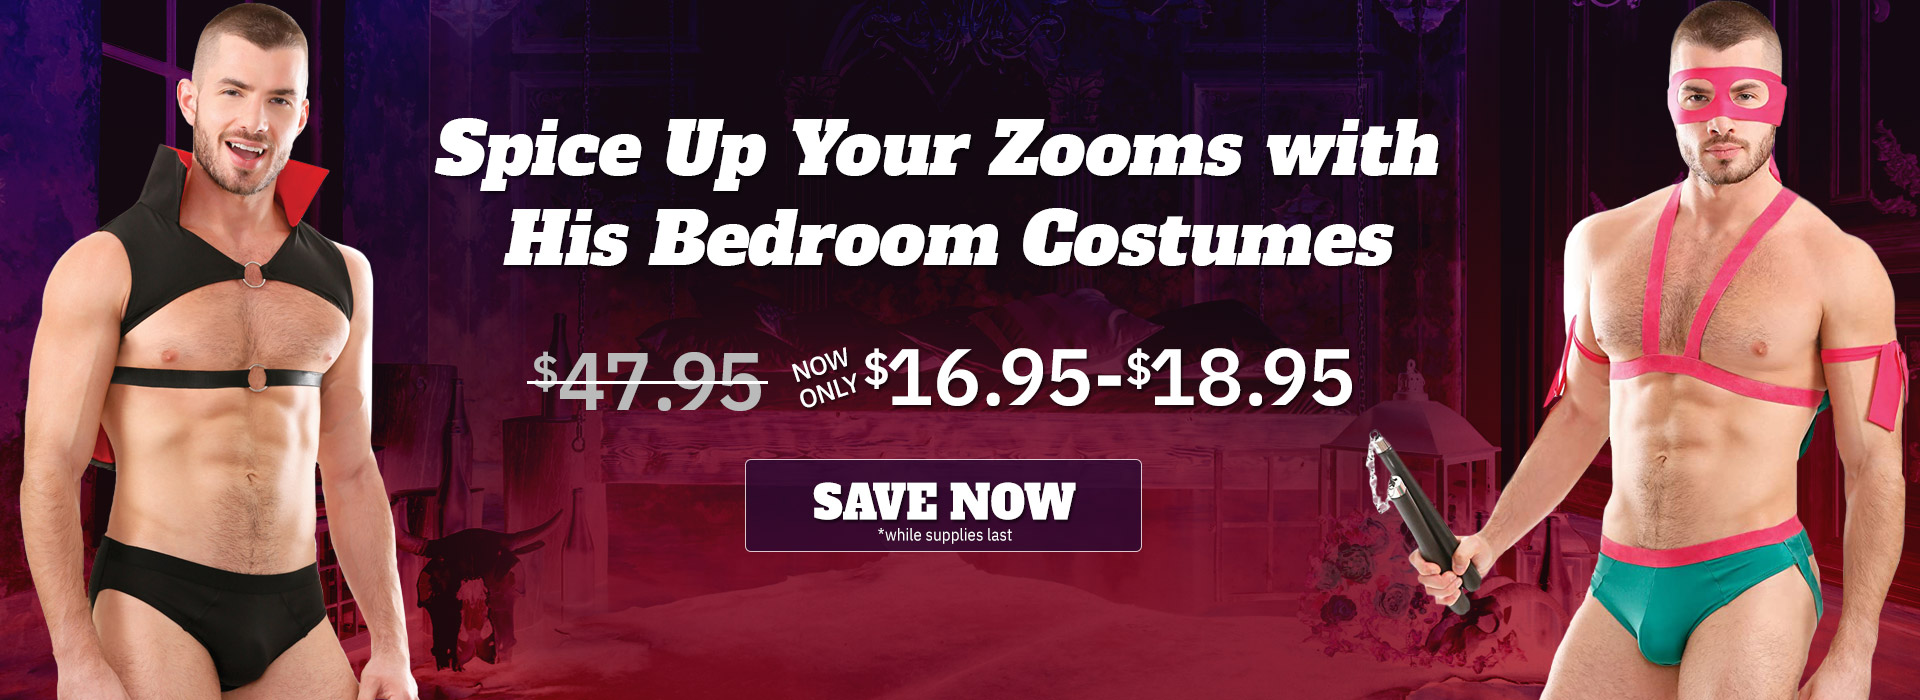 Bedroom Costumes for Men on Sale!